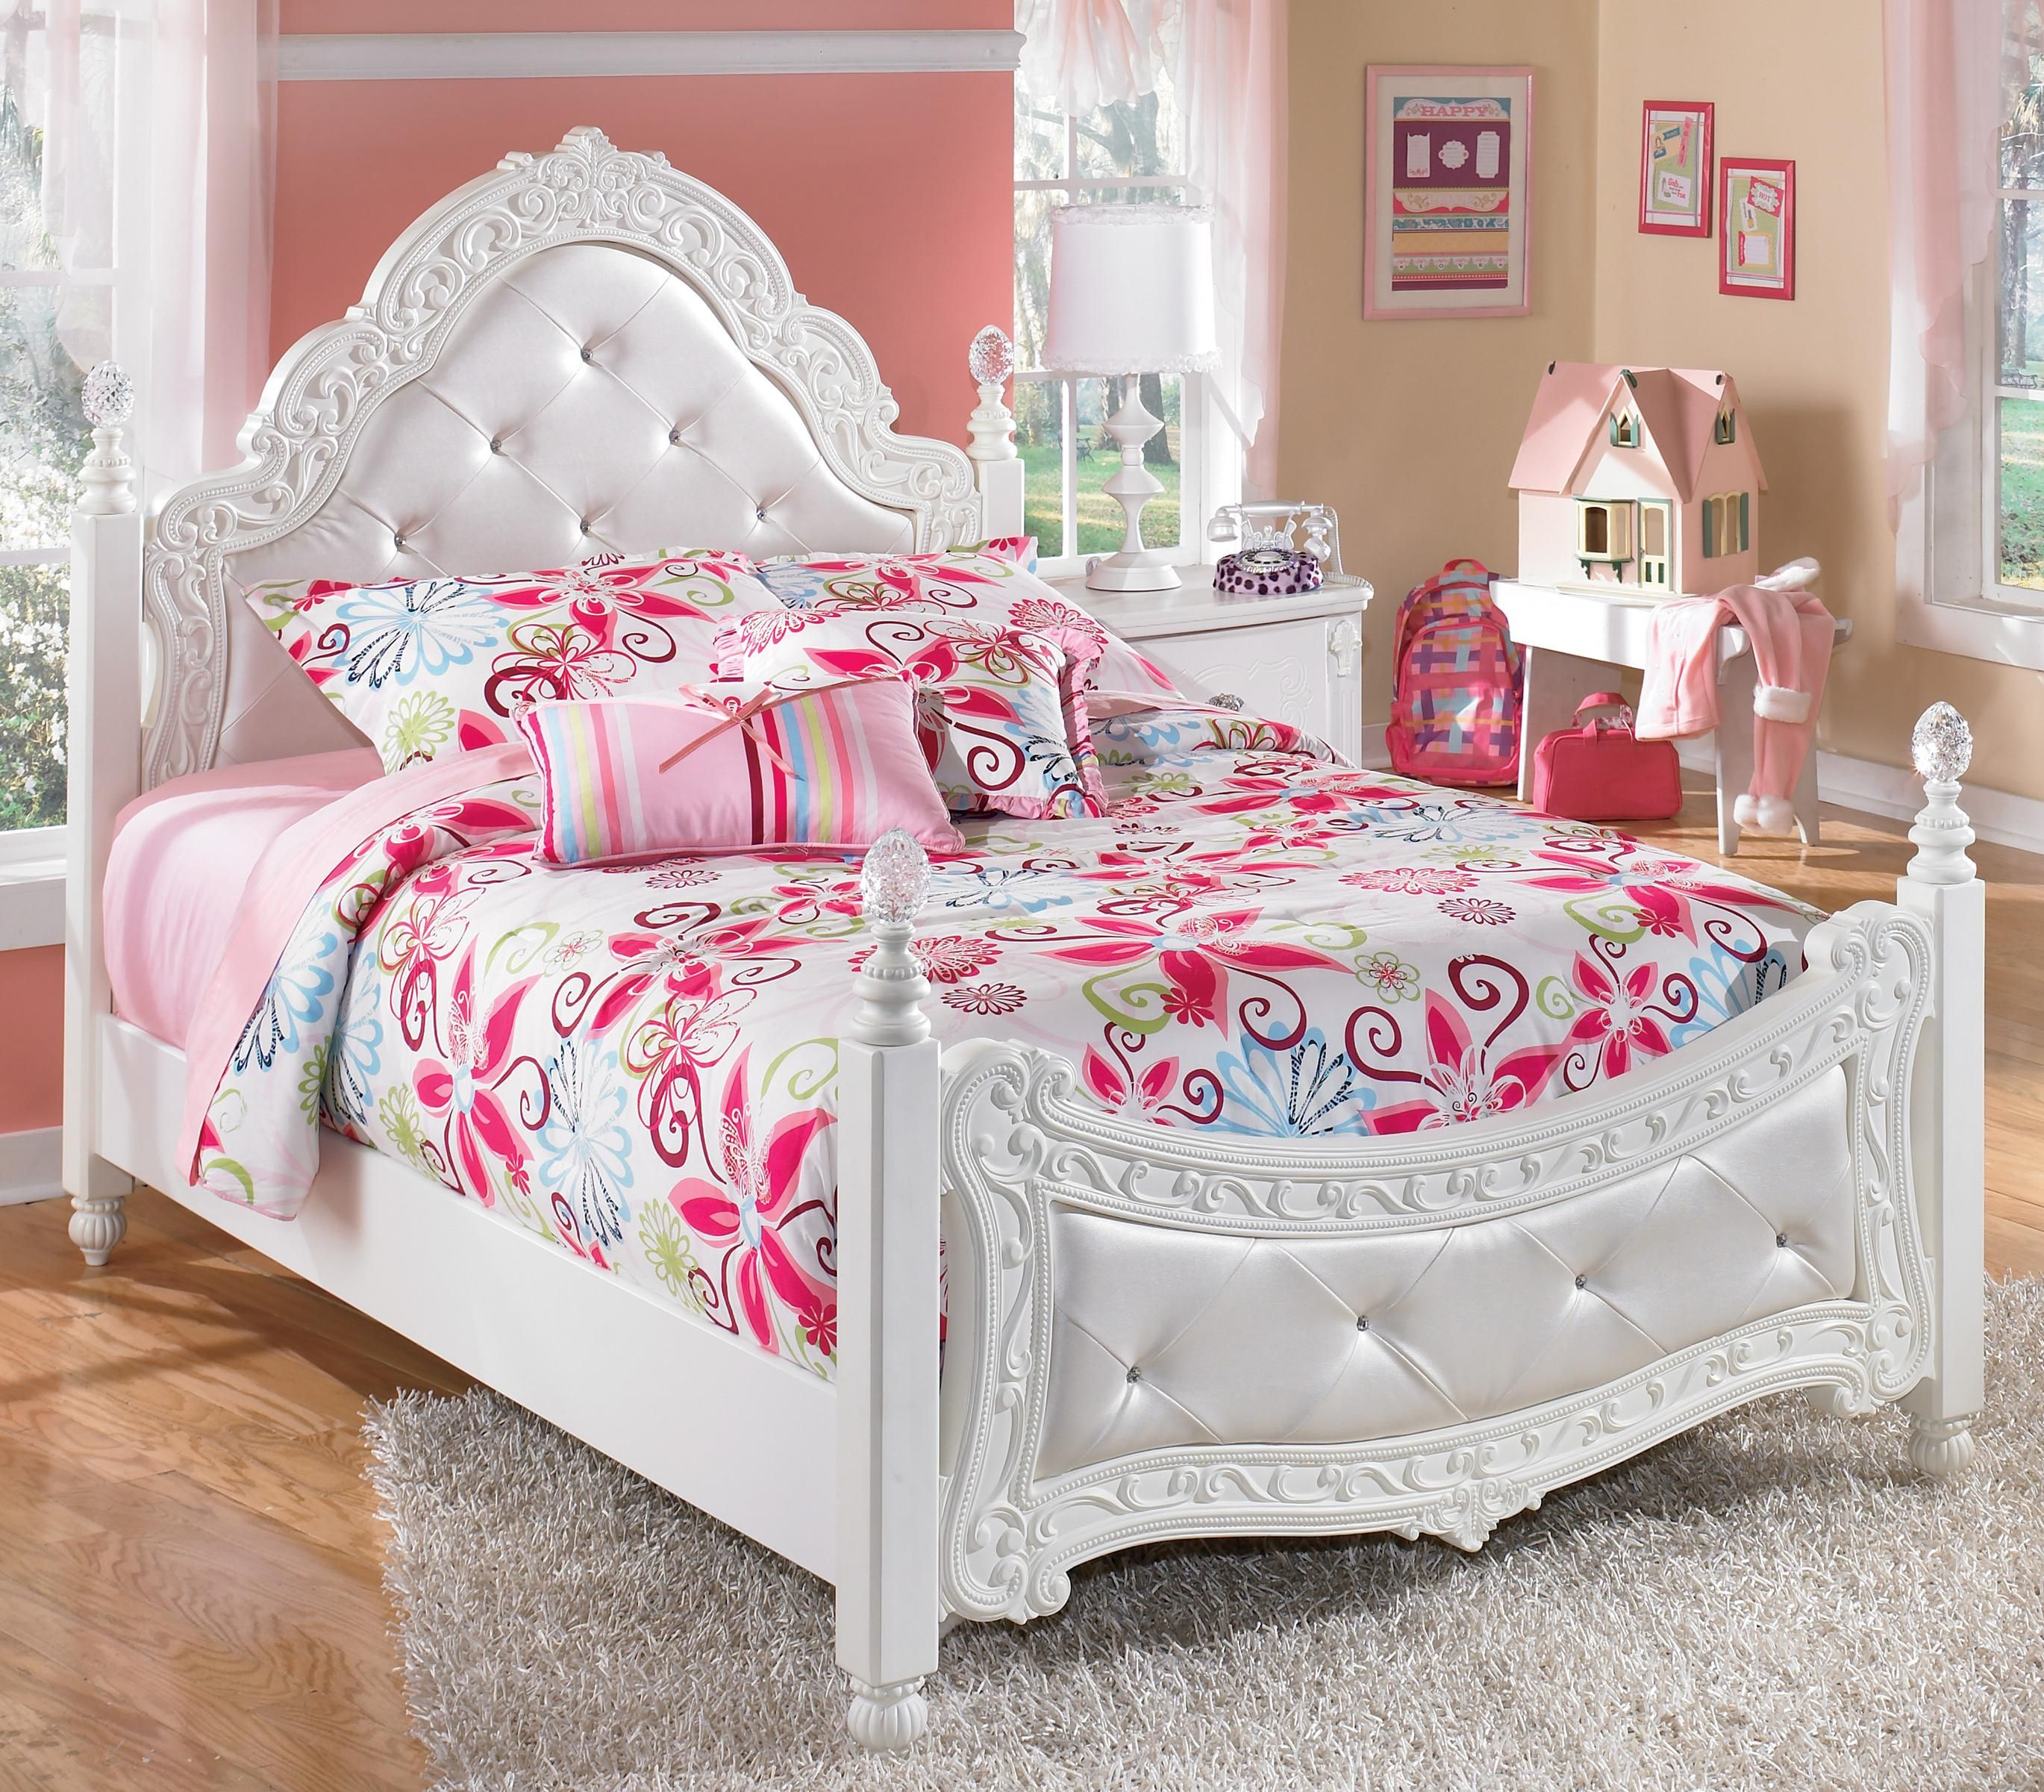 Stupendous Home My Wishlist Bedroom Furniture Sets Childrens Beutiful Home Inspiration Ommitmahrainfo